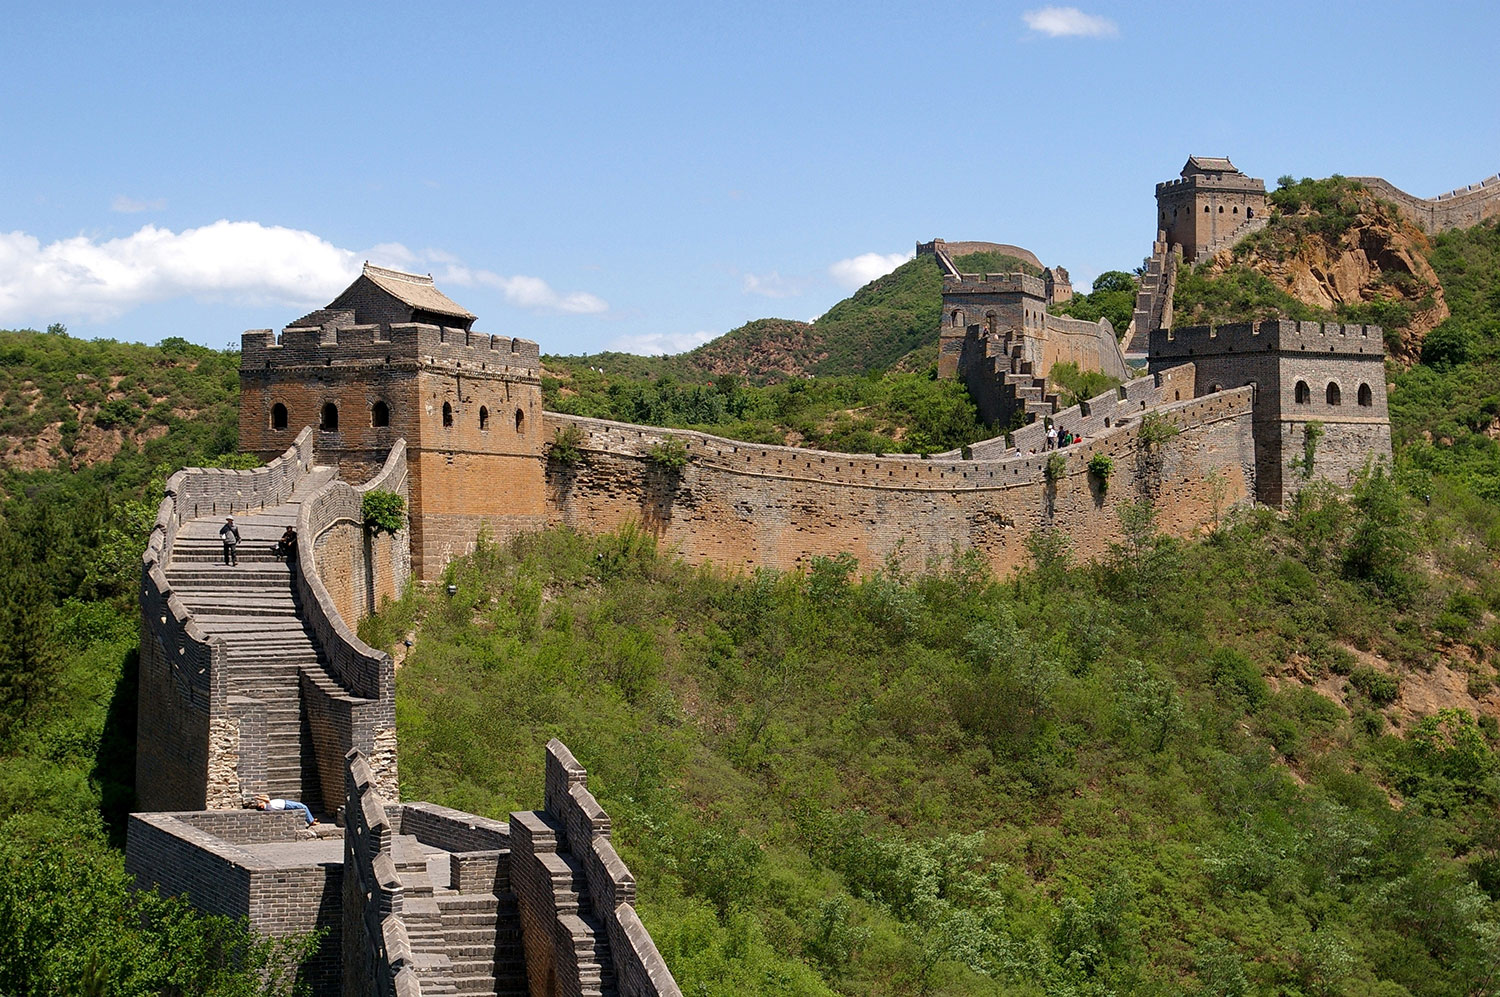 Seven New Wonders of the World - Great Wall of China